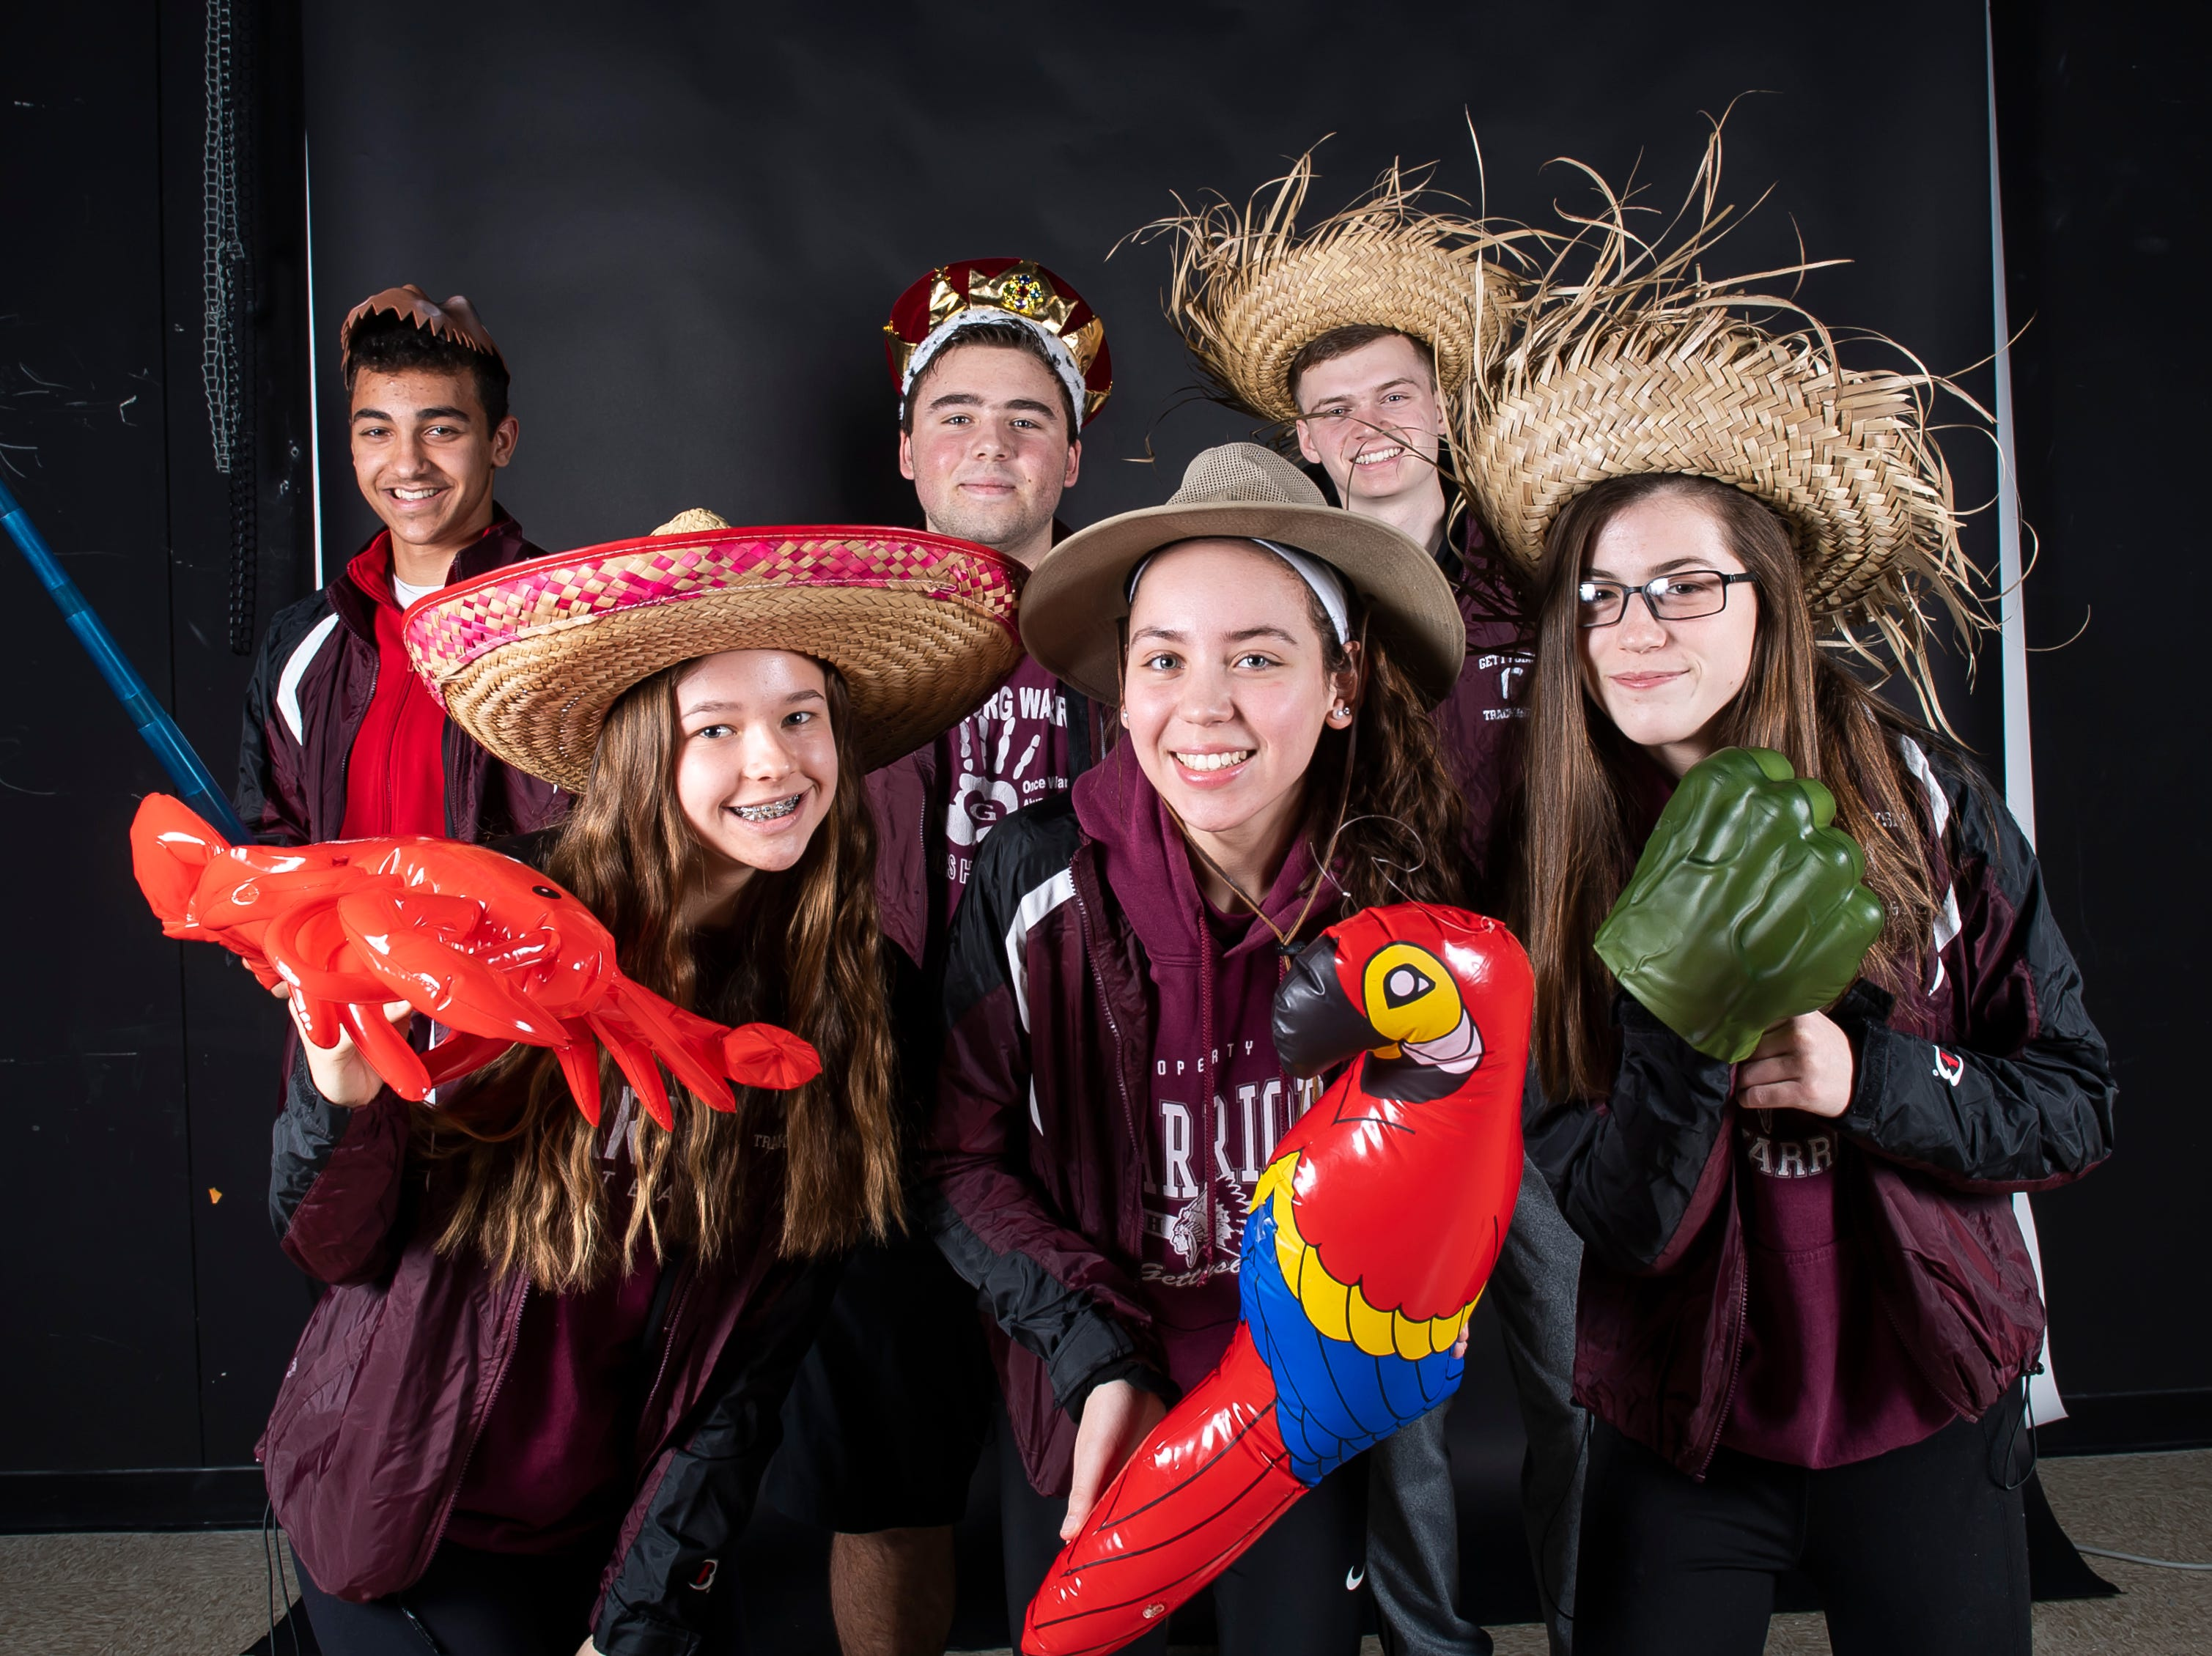 (From back left) Gettysburg track and field athletes Noah Sanders, Cory Bixler, Andrew Hirneisen, Lora Betram, Sidney Shelton and Kelty Oaster strike a pose in the GameTimePA photo booth during spring sports media day in York Sunday, March 10, 2019.